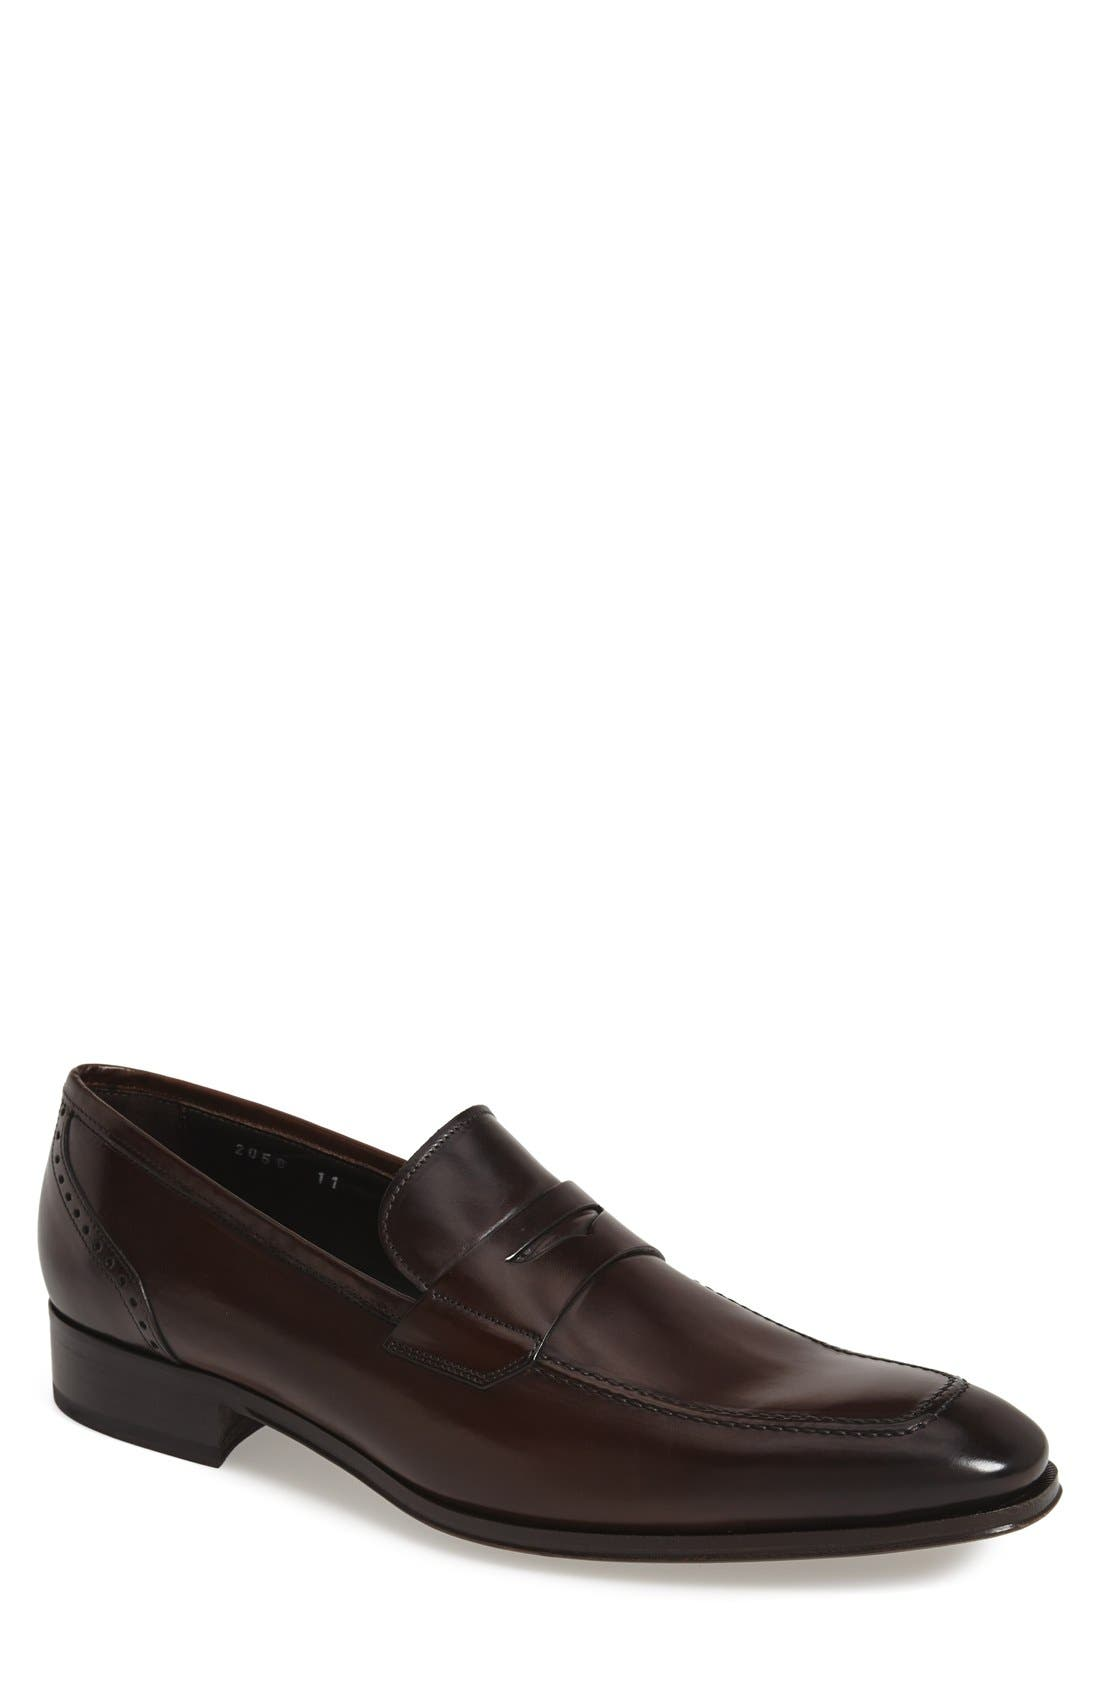 TO BOOT NEW YORK 'Moore' Penny Loafer